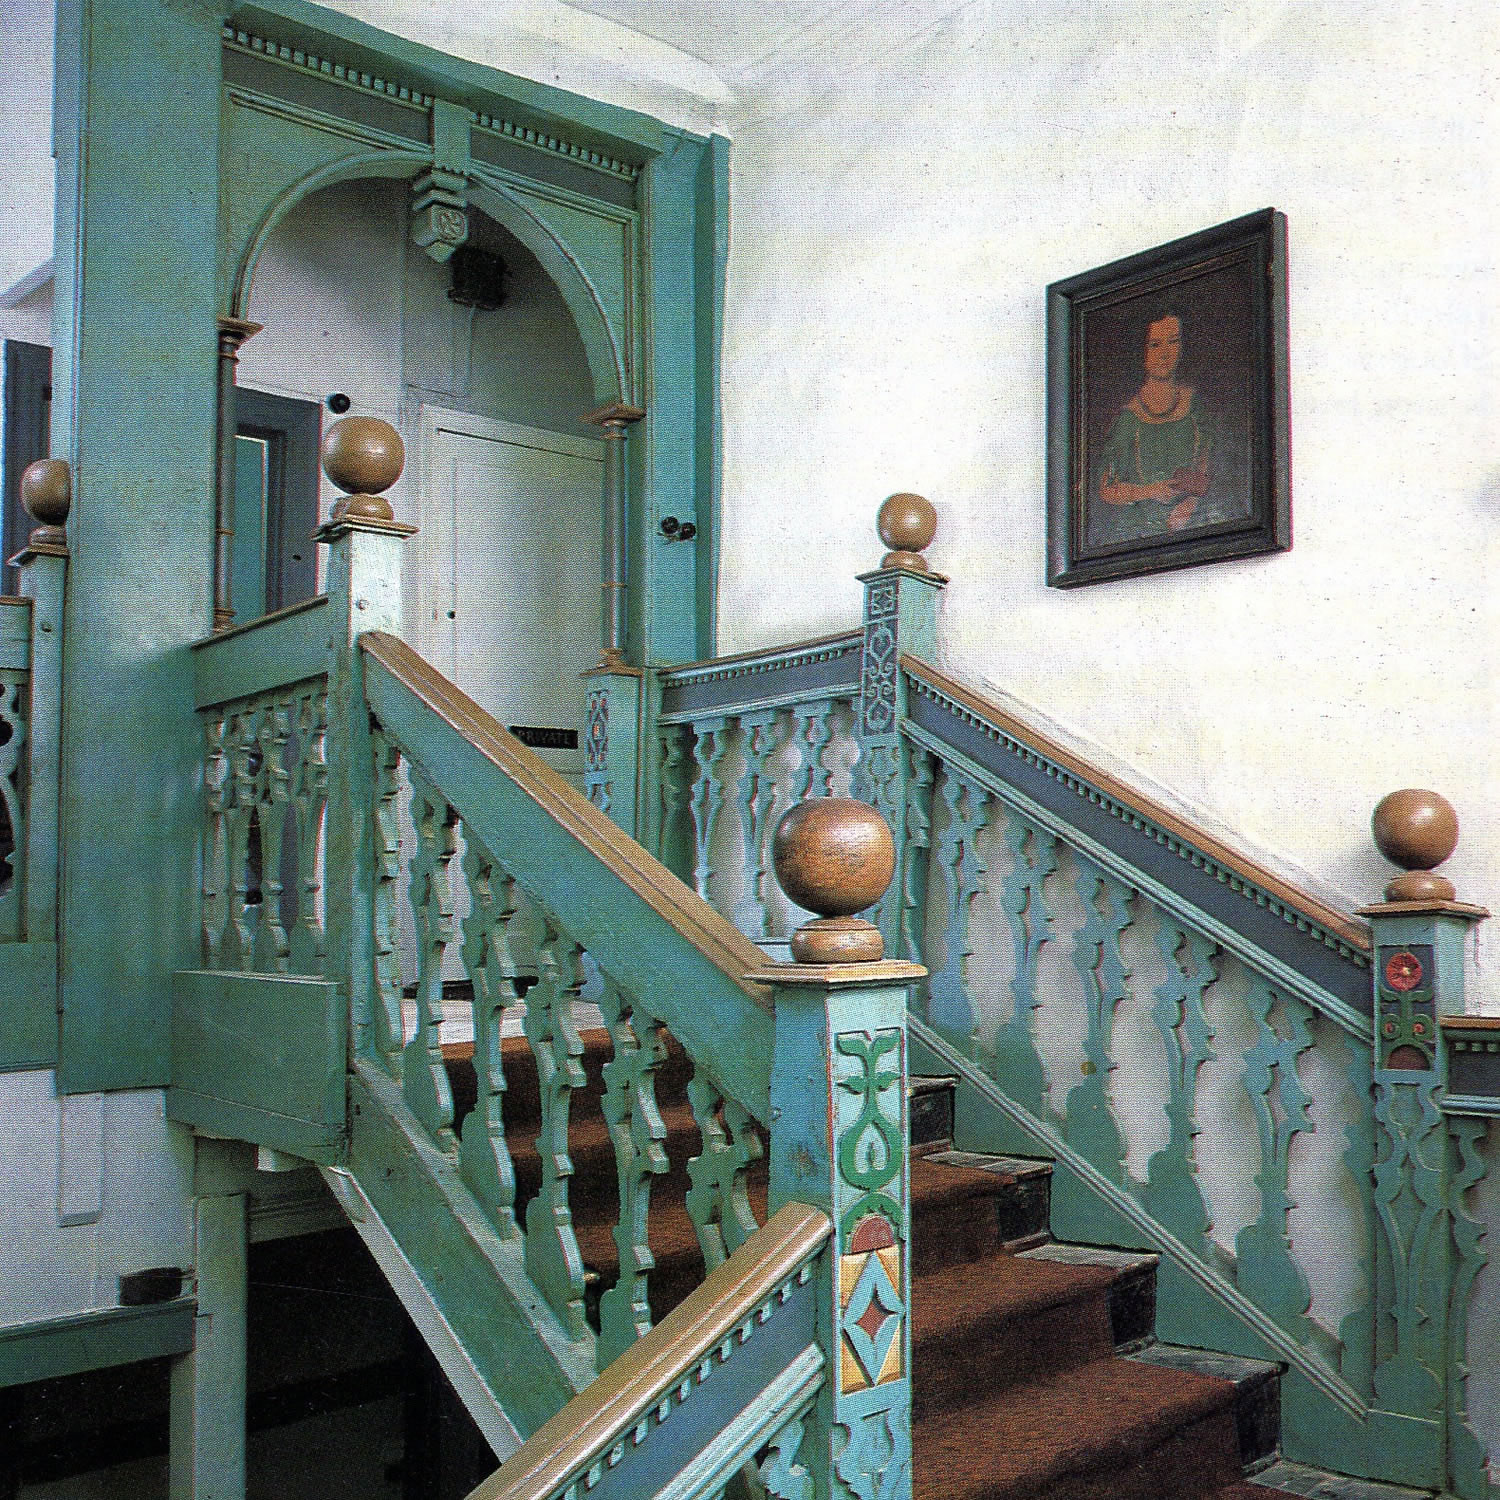 Restoration of this striking mid-C17th painted staircase in Wiltshire